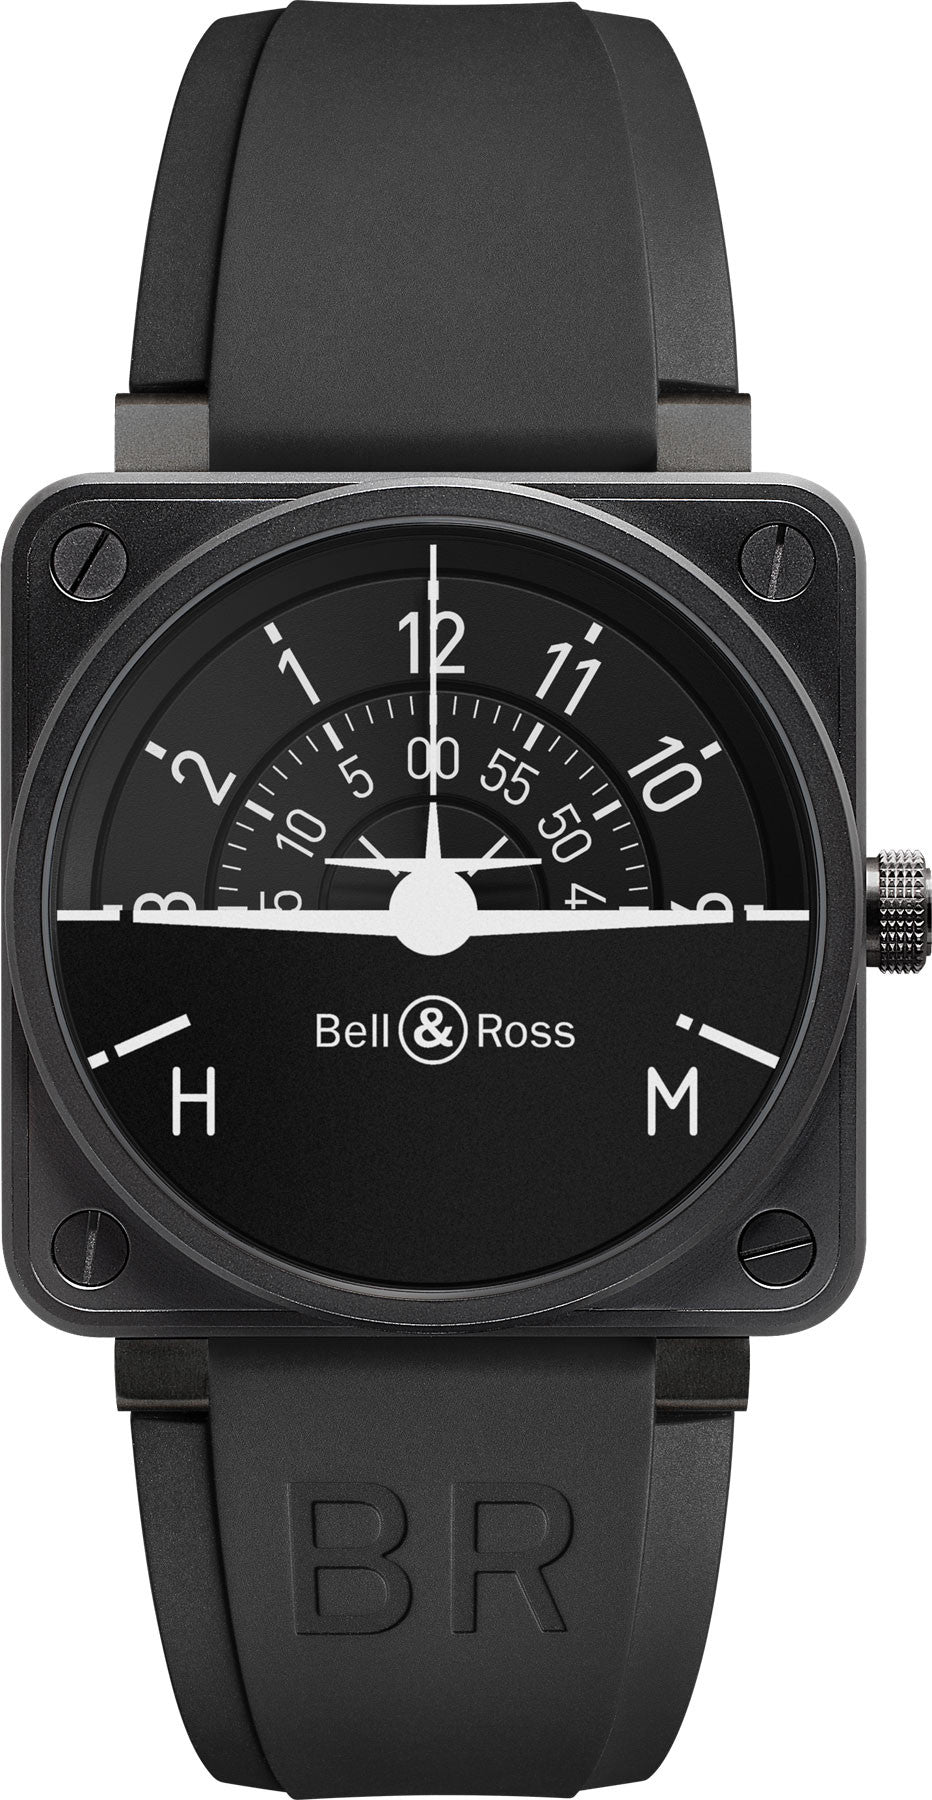 Bell & Ross Watch BR 01 92 Turn Coordinator Limited Edition